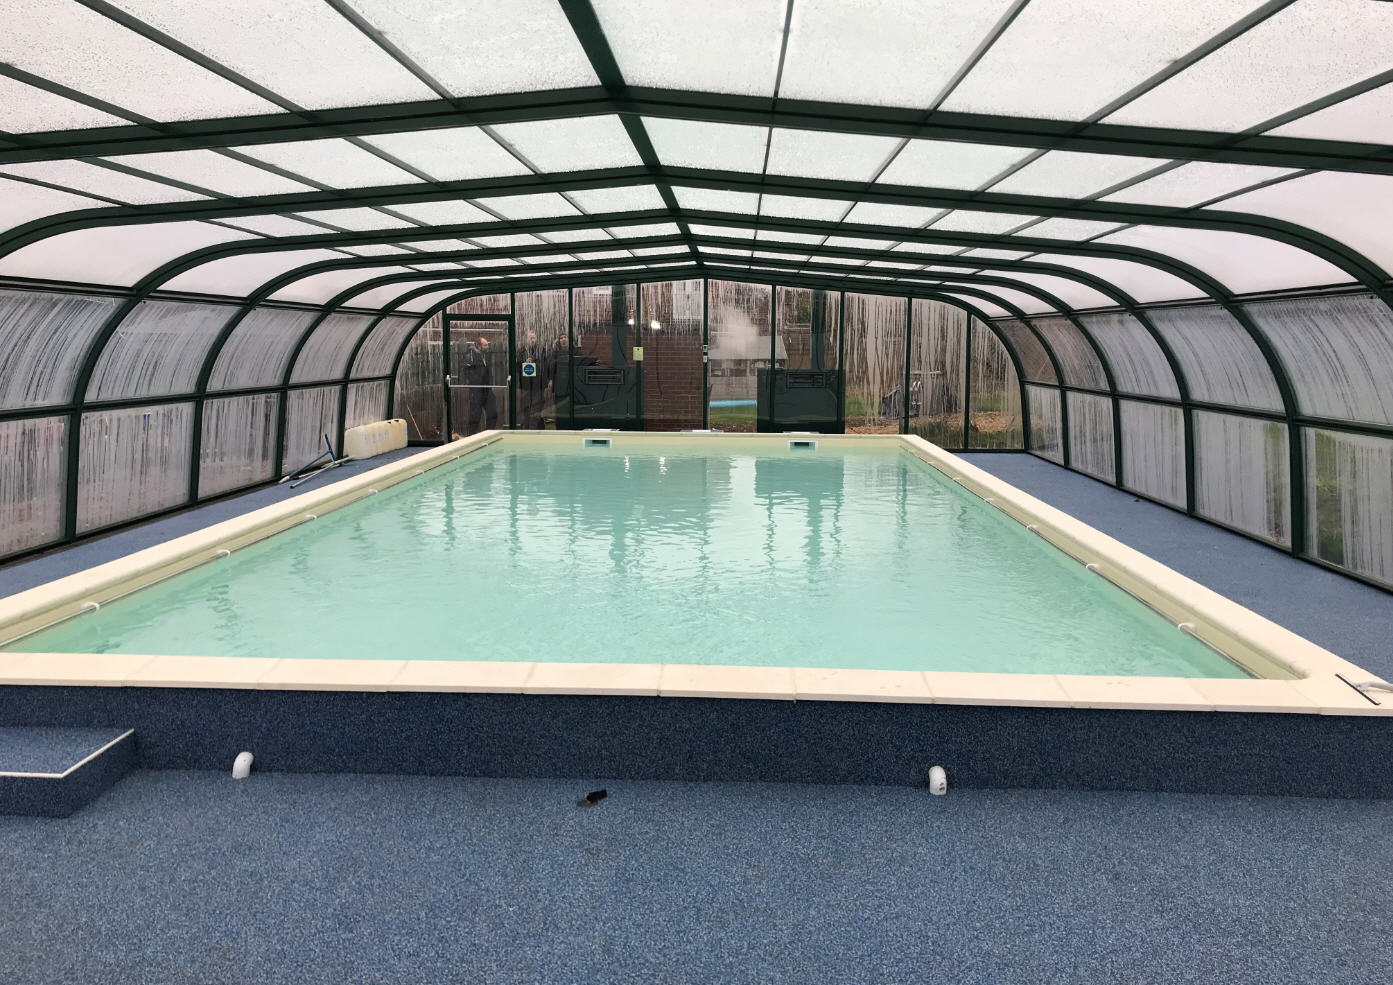 Sutton-School-Pool-Enclosure-by-Swimex-01